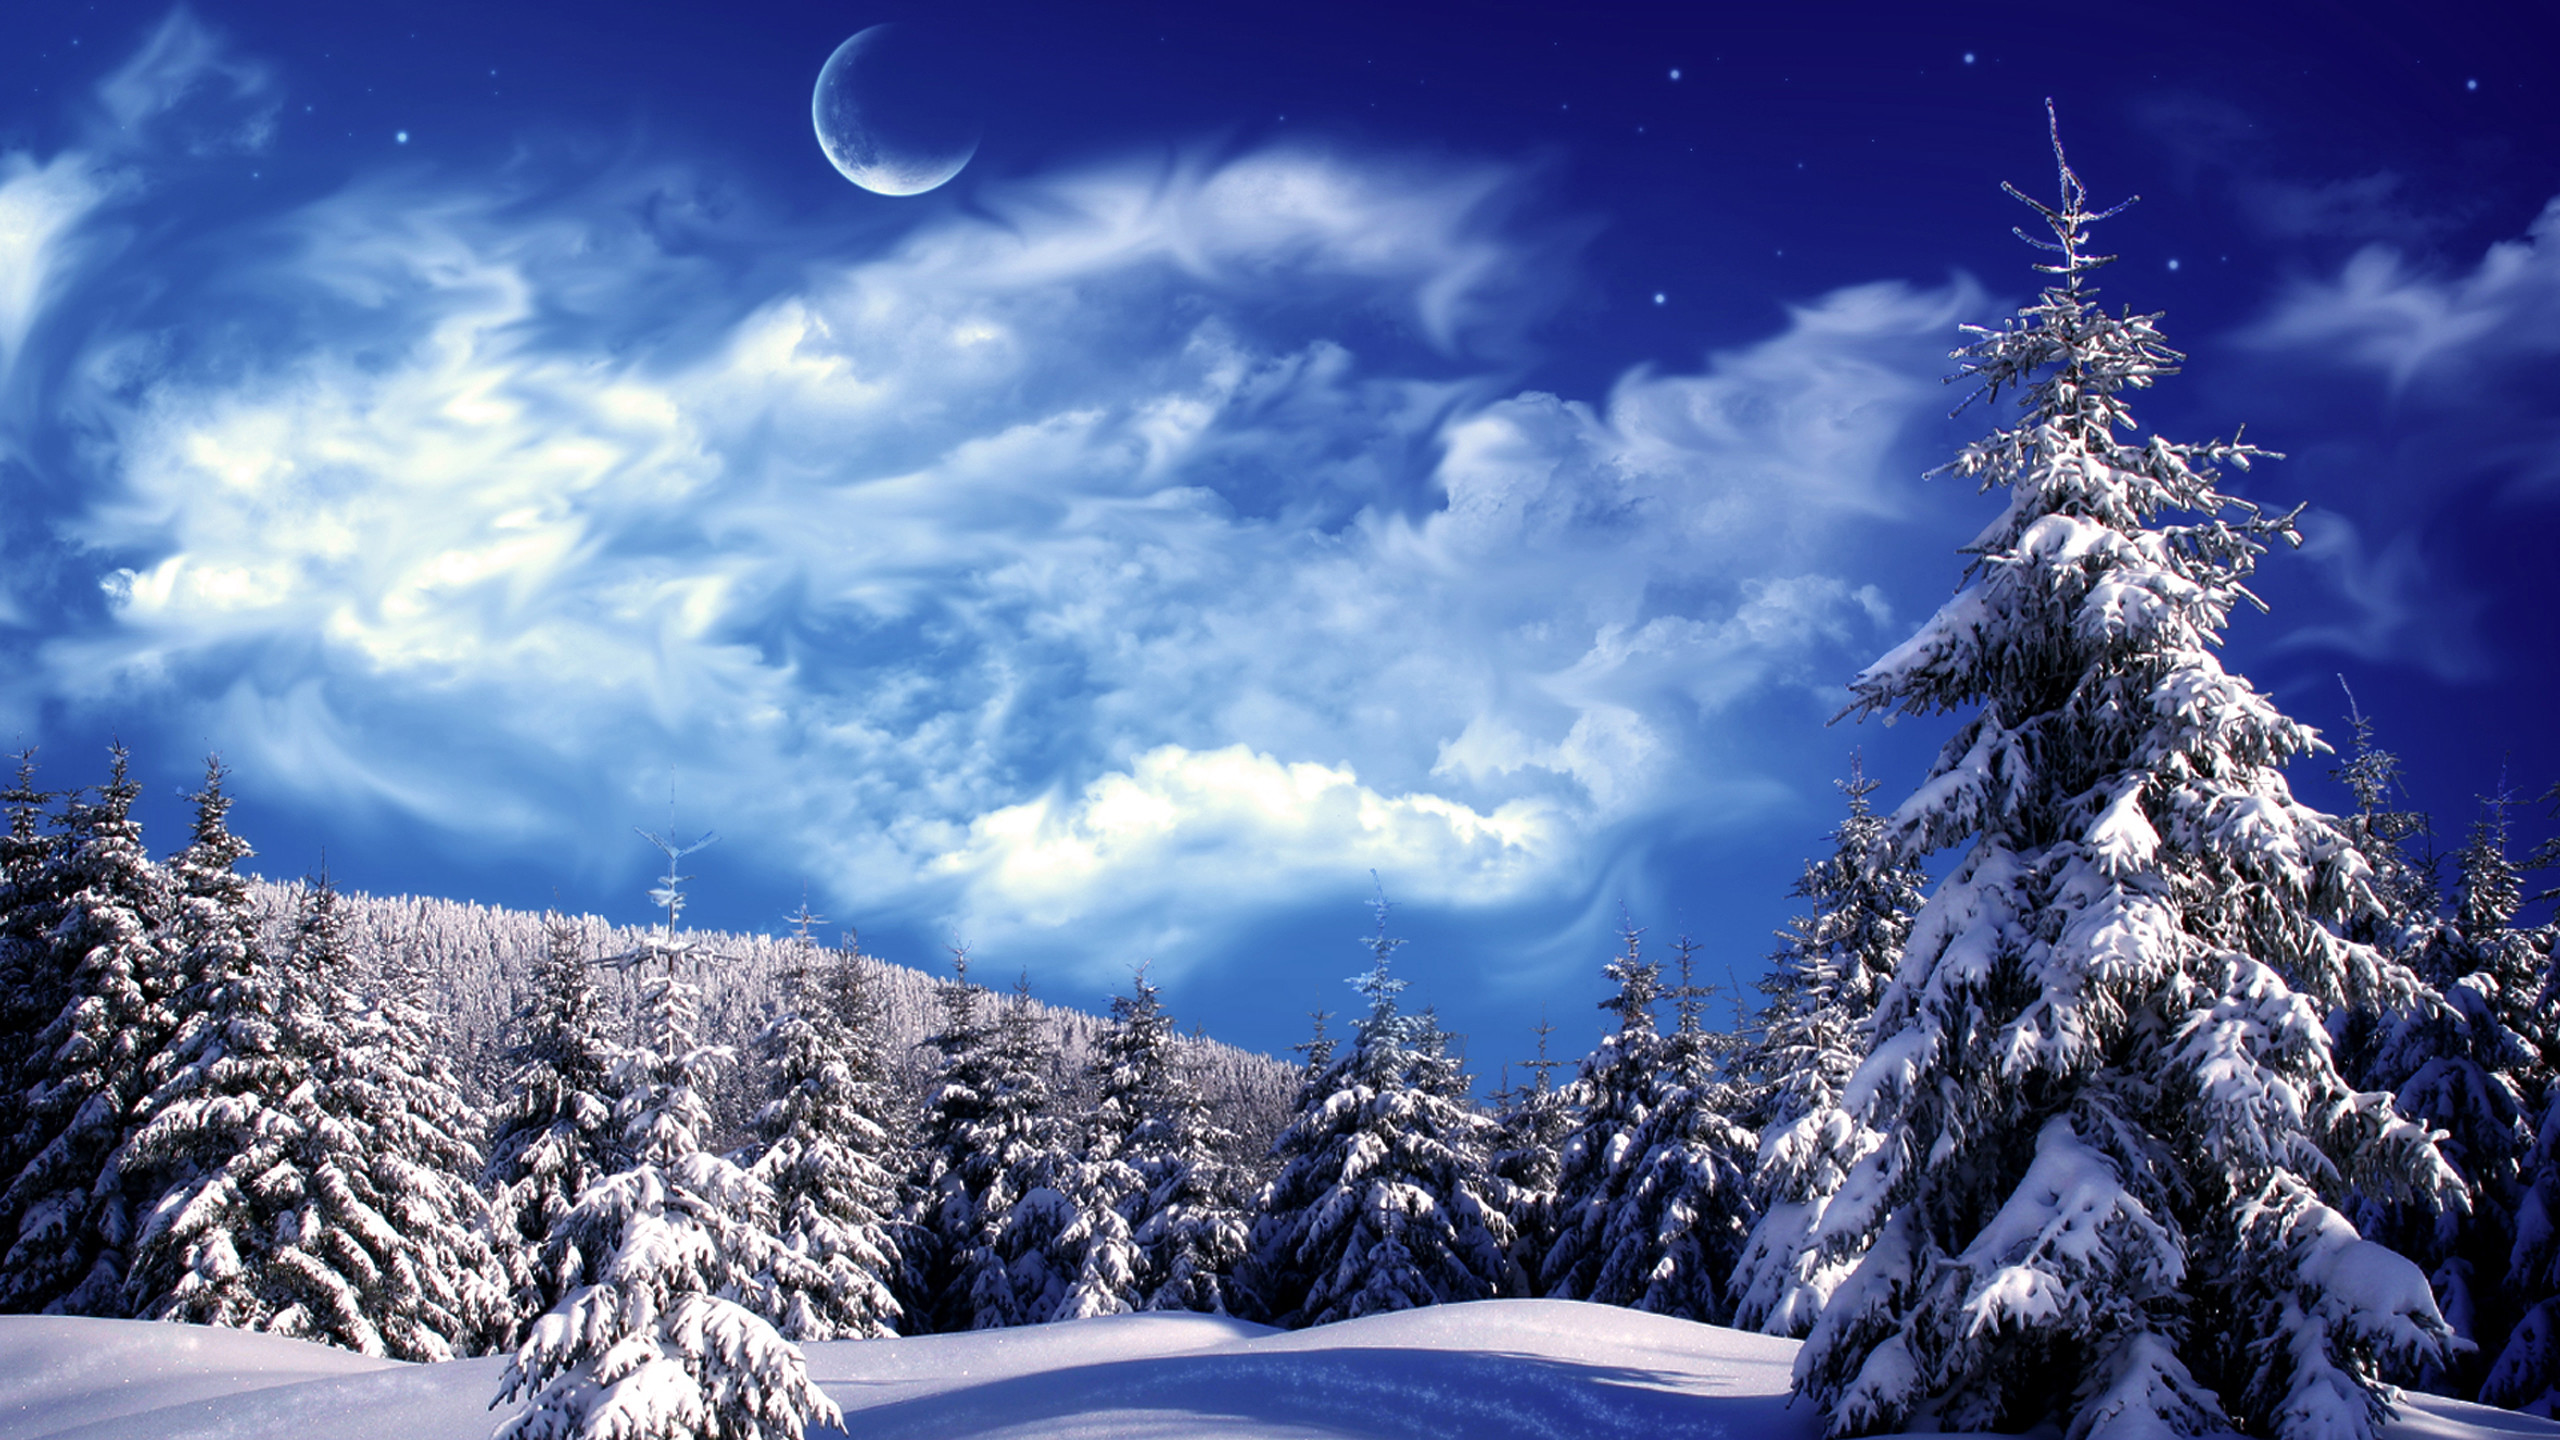 Wallpaper Scenes Delectable Christmas Snow Wallpaper Scenes 38 Images